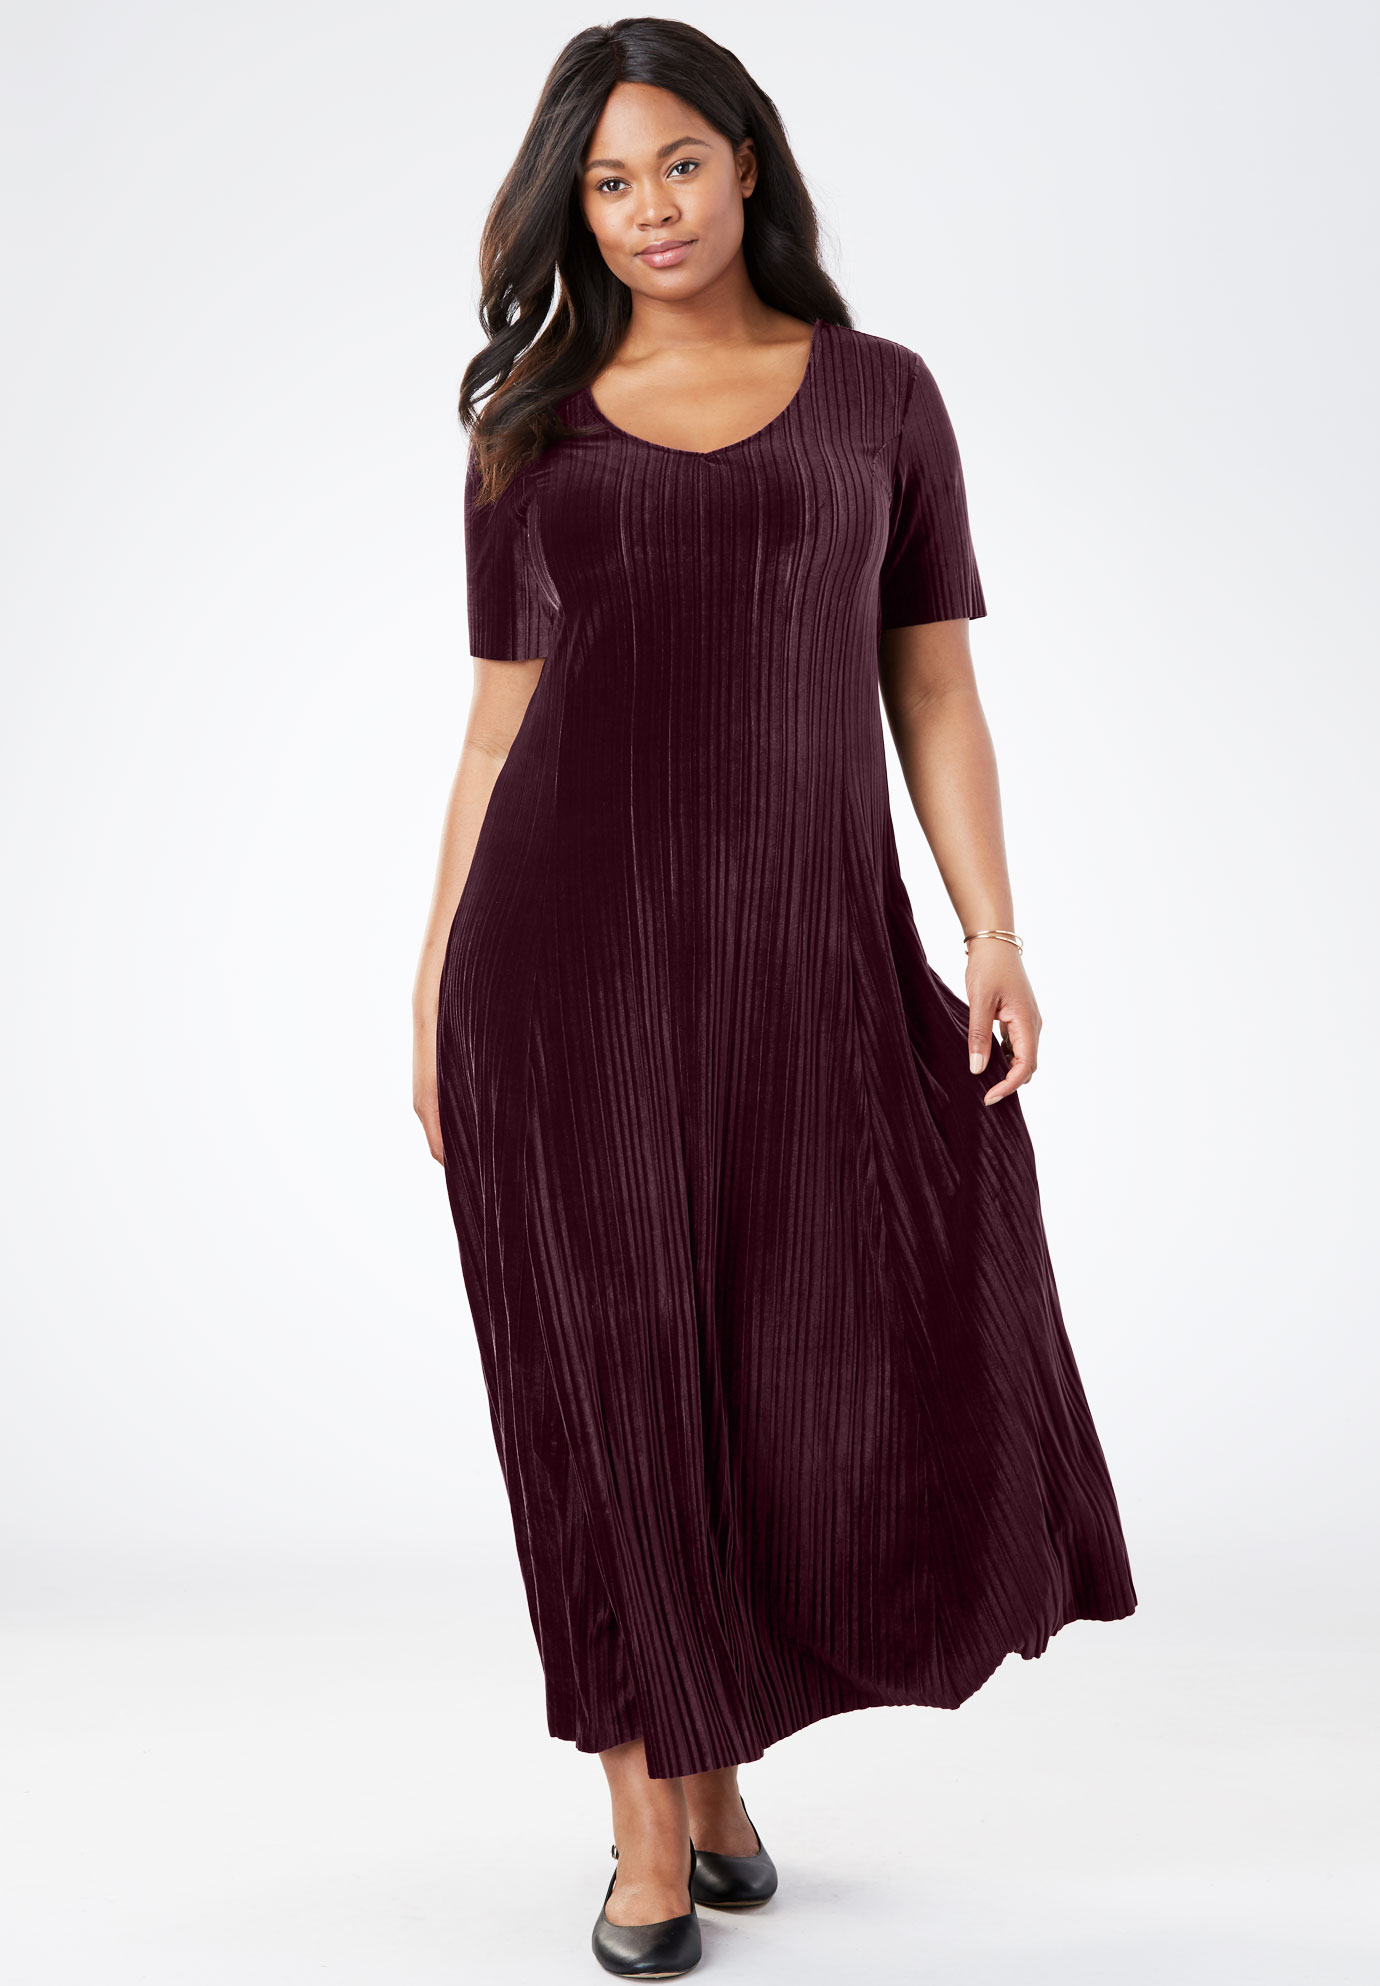 Pleated Velour Dress Plus Size Special Occasion